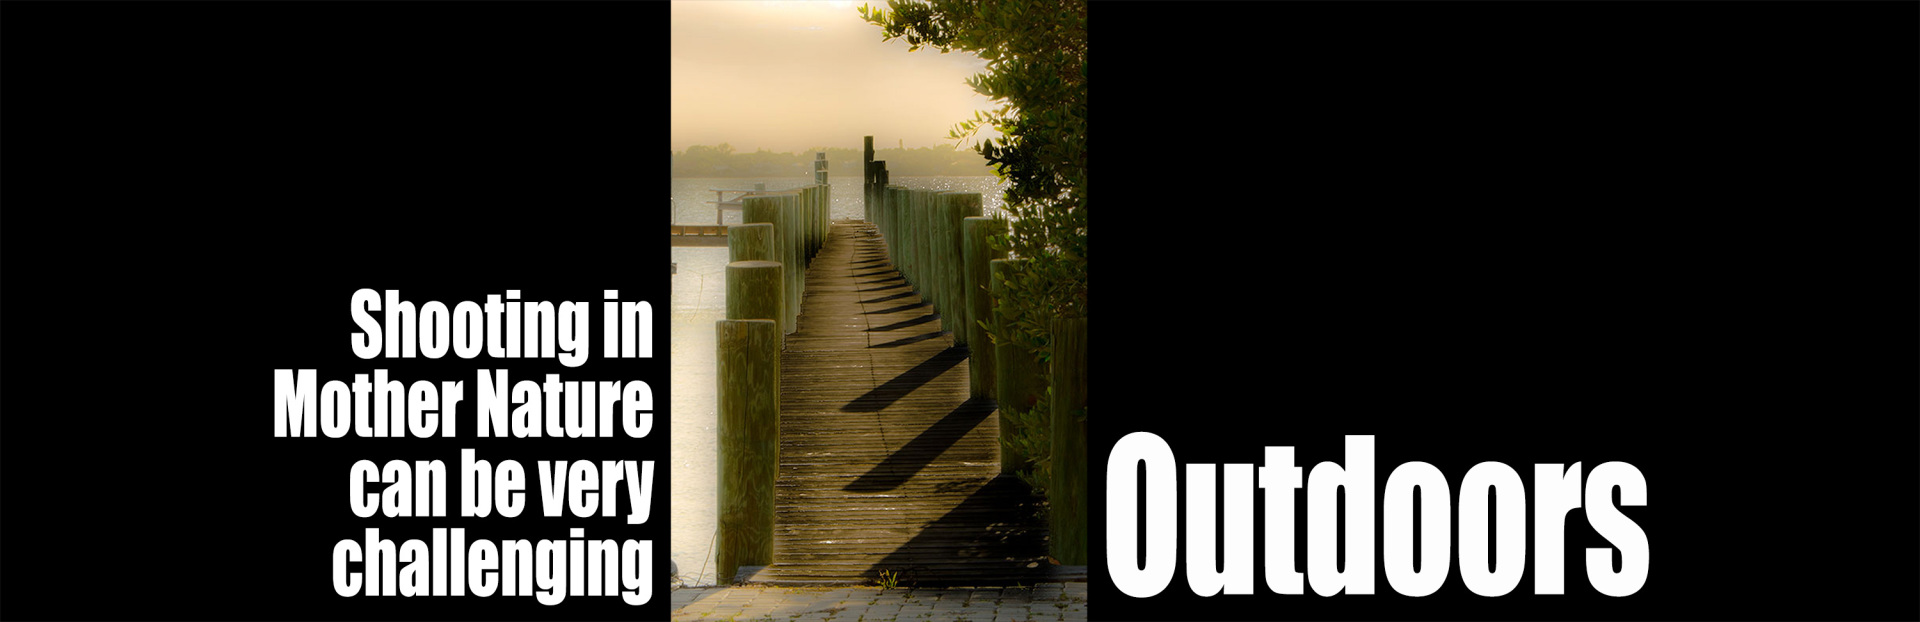 Banner wostphoto categorie portfolio_outdoors